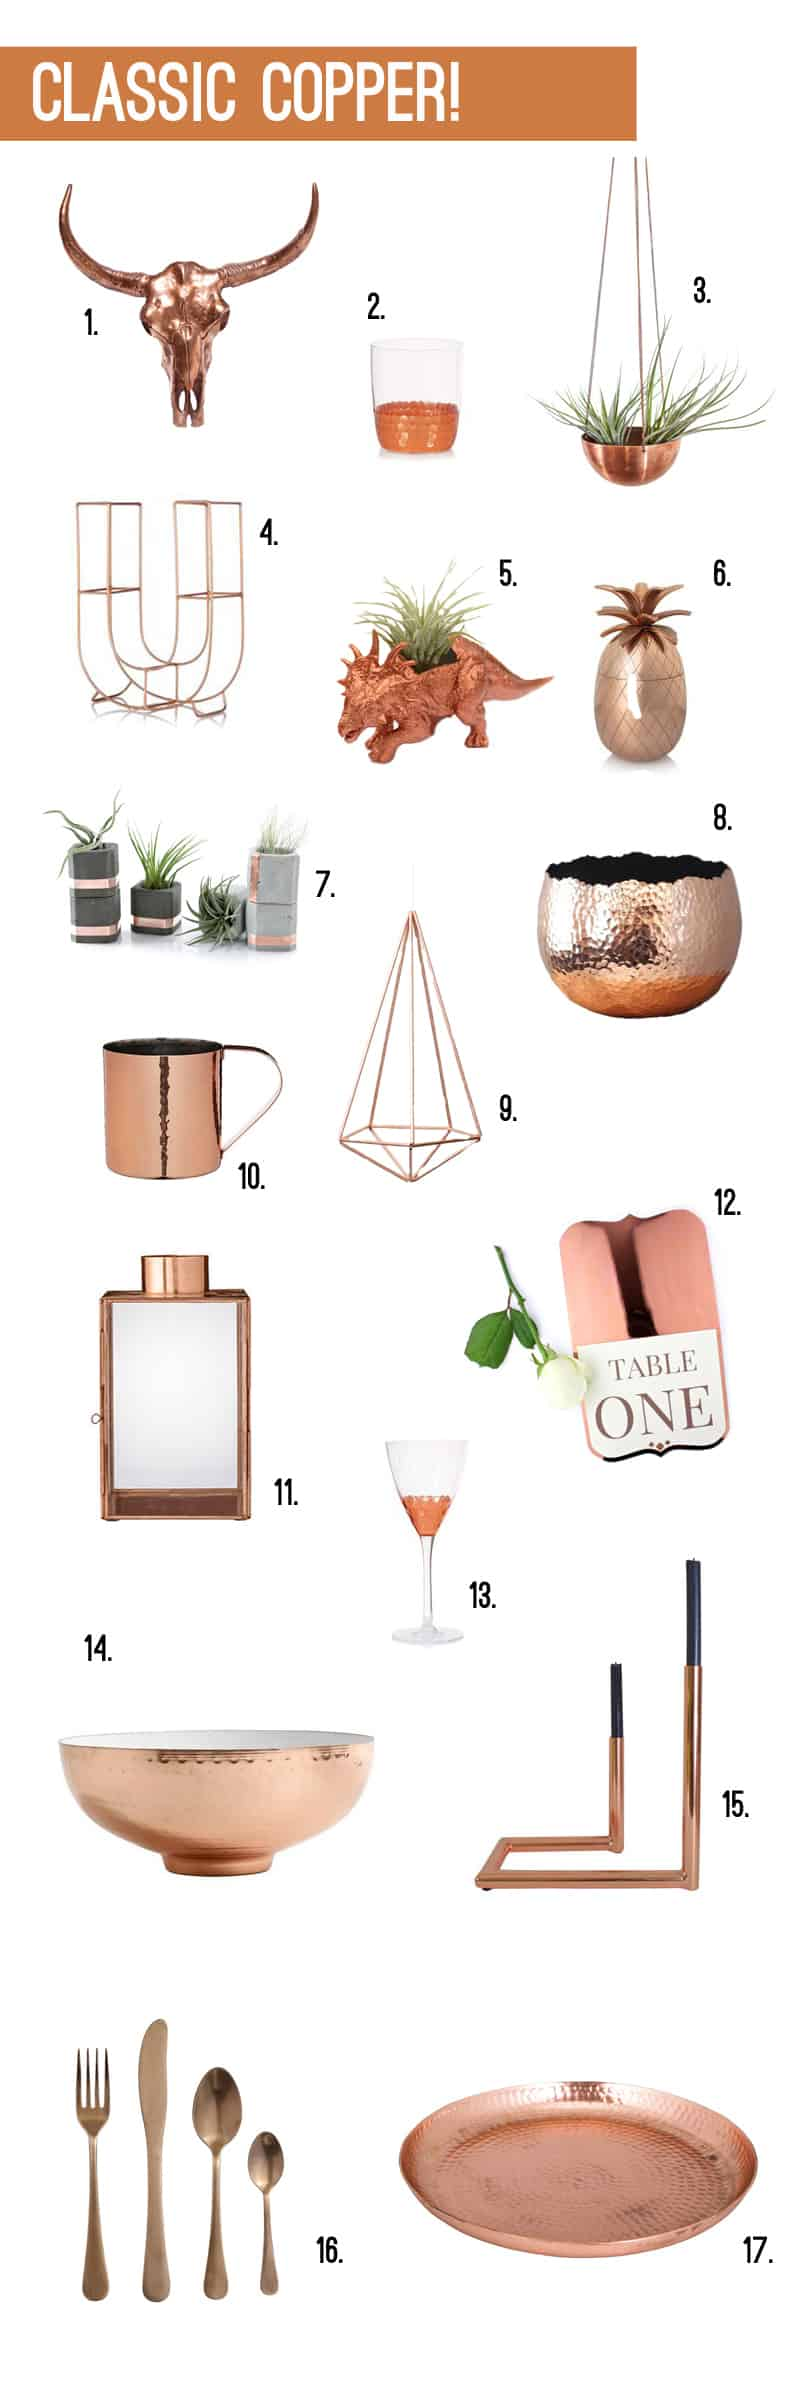 Classic Copper - Wedding Accessories 2